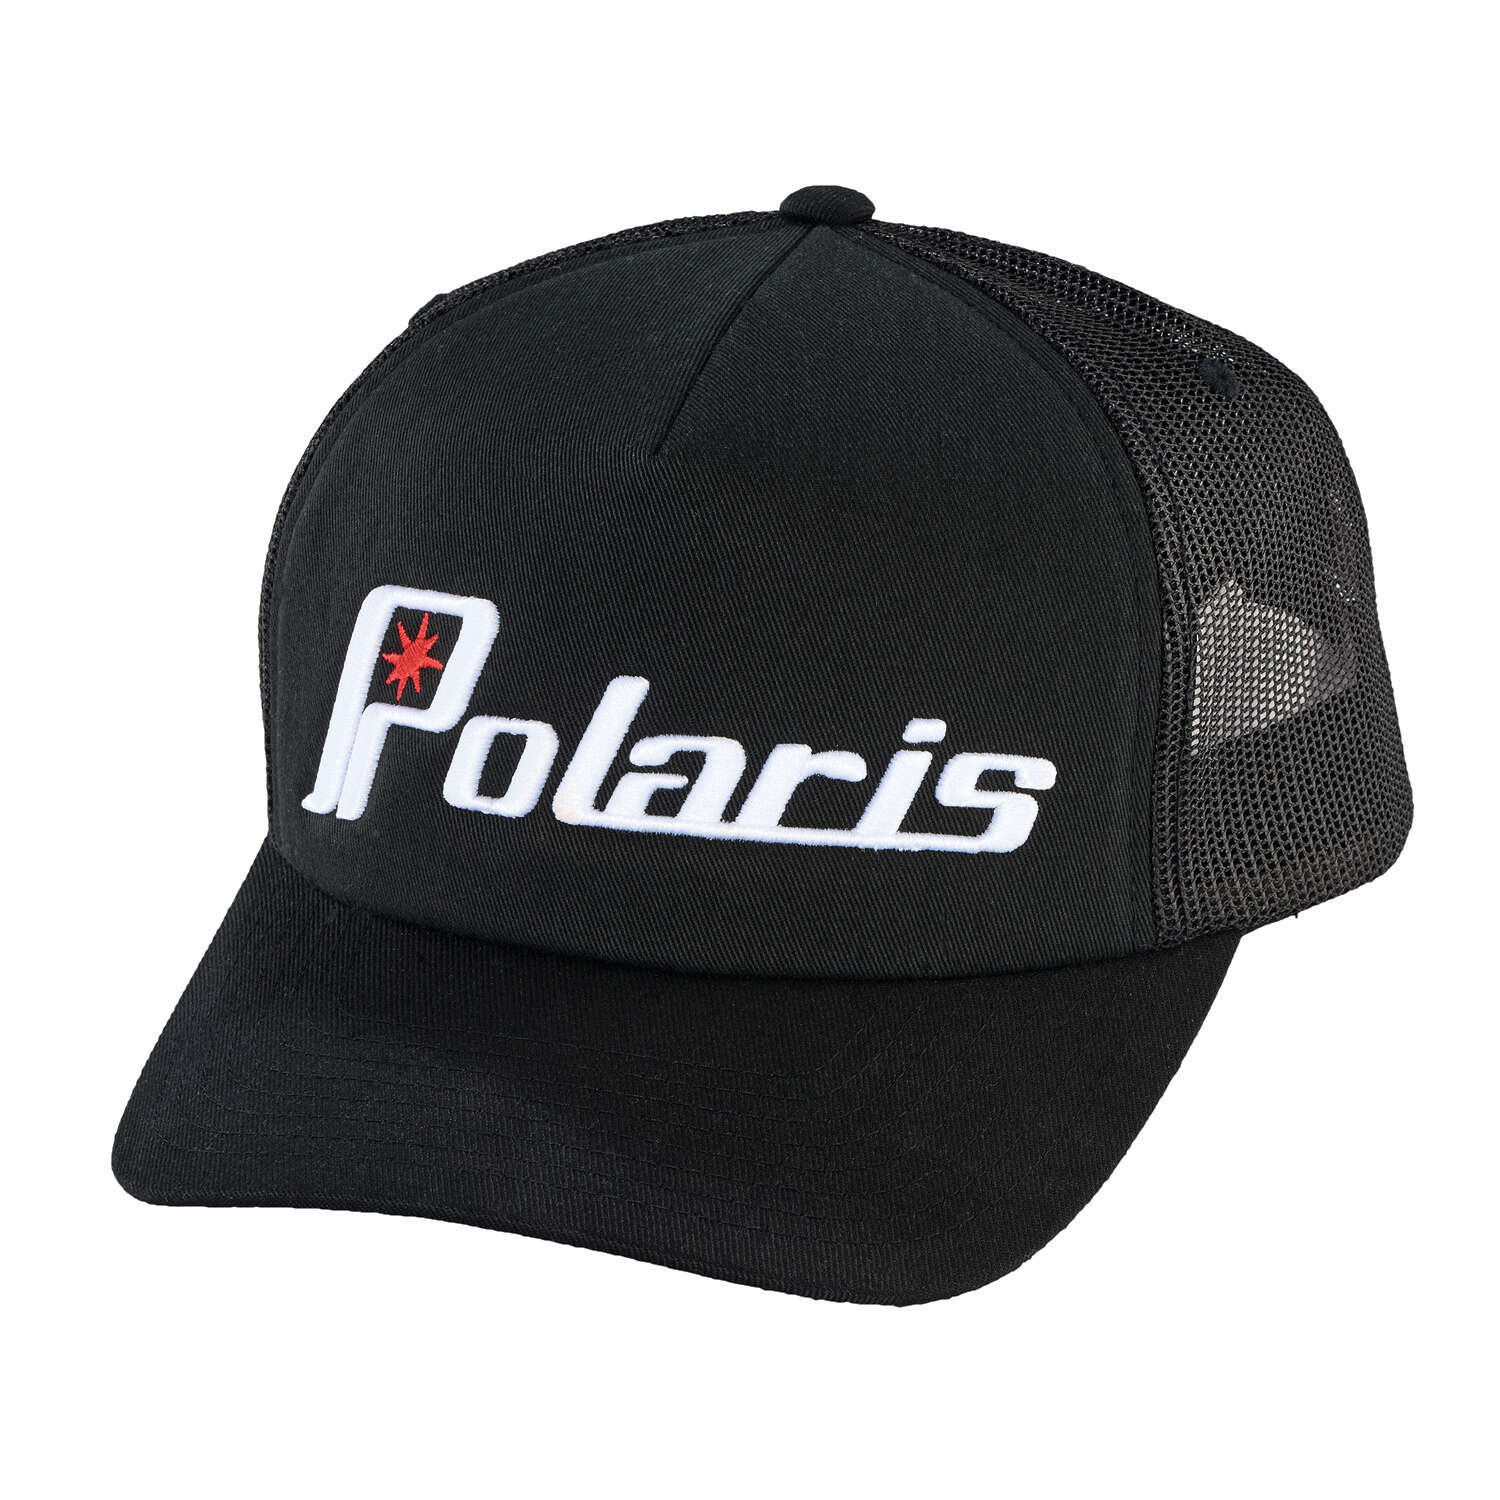 Men's Adjustable Mesh Snapback Hat with Retro White Polaris® Ellipse Logo, Black